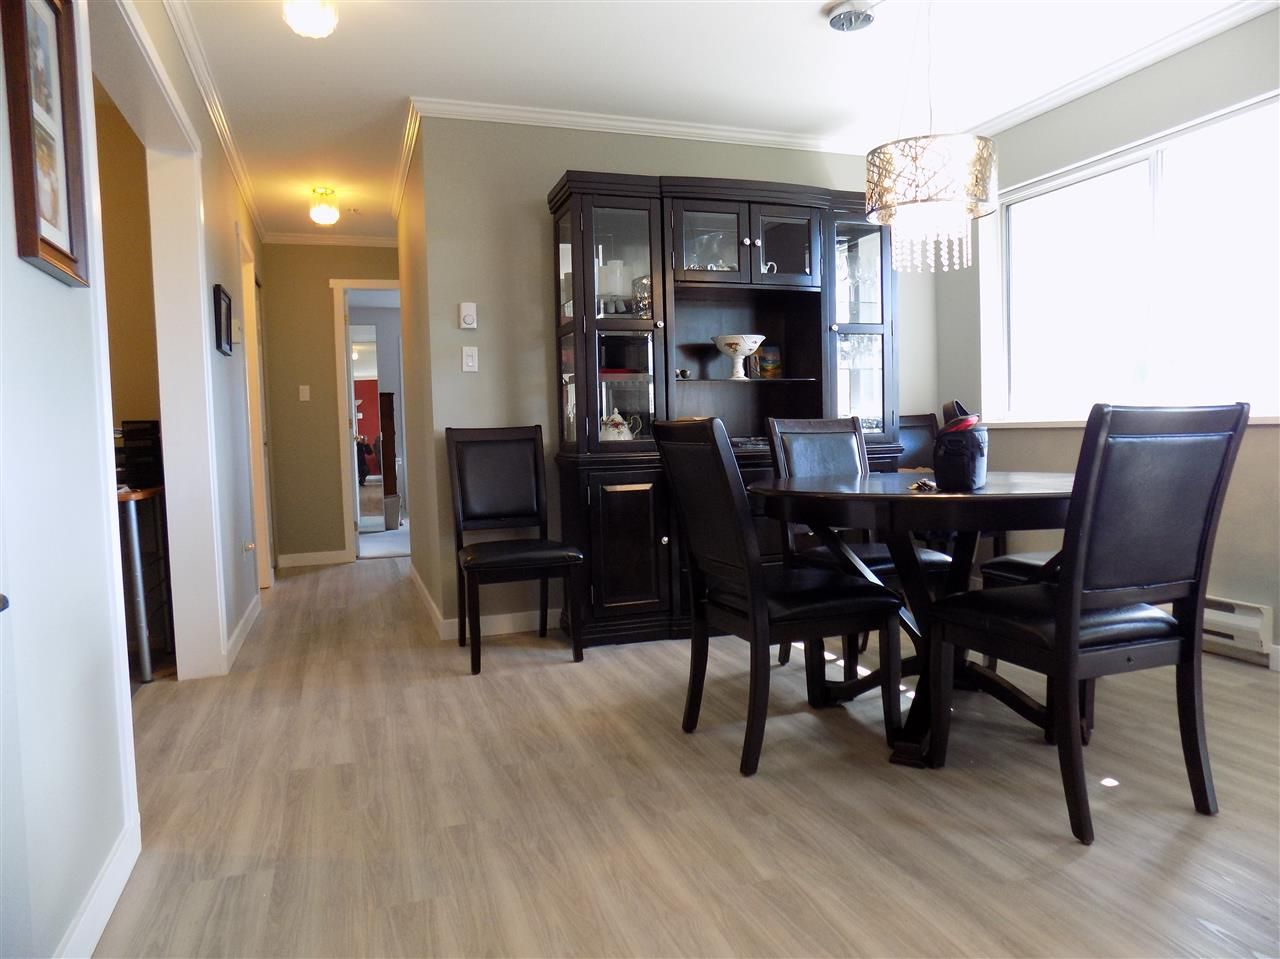 Photo 7: Photos: 311 32044 OLD YALE Road in Abbotsford: Abbotsford West Condo for sale : MLS®# R2331409